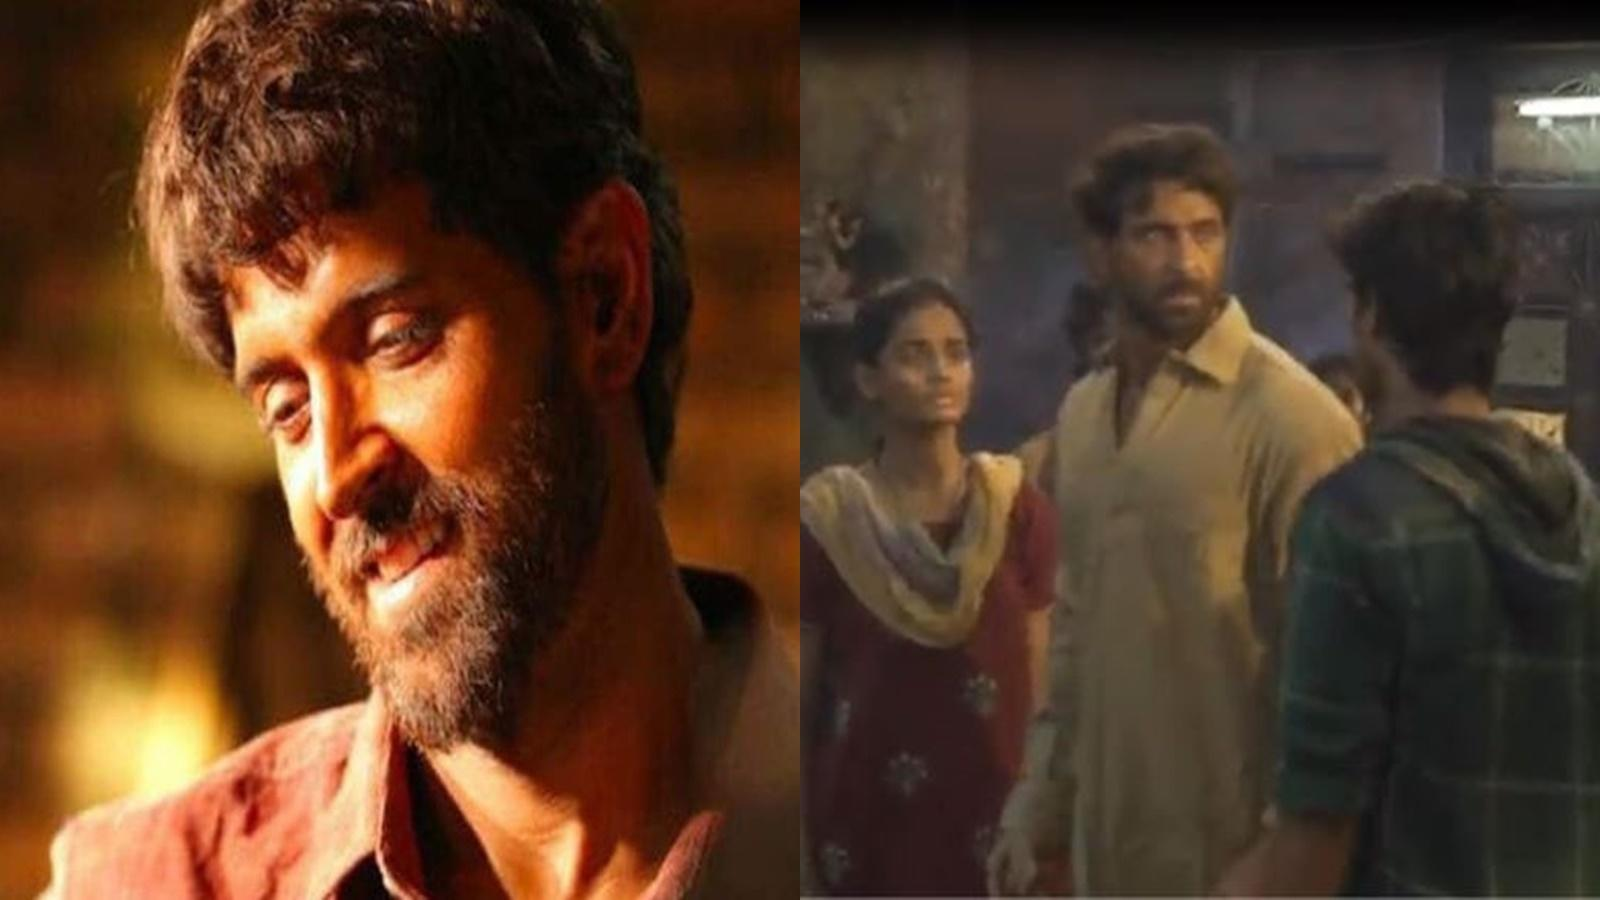 Hrithik Roshan shares the amazing journey of his 'Super 30' students in BTS video